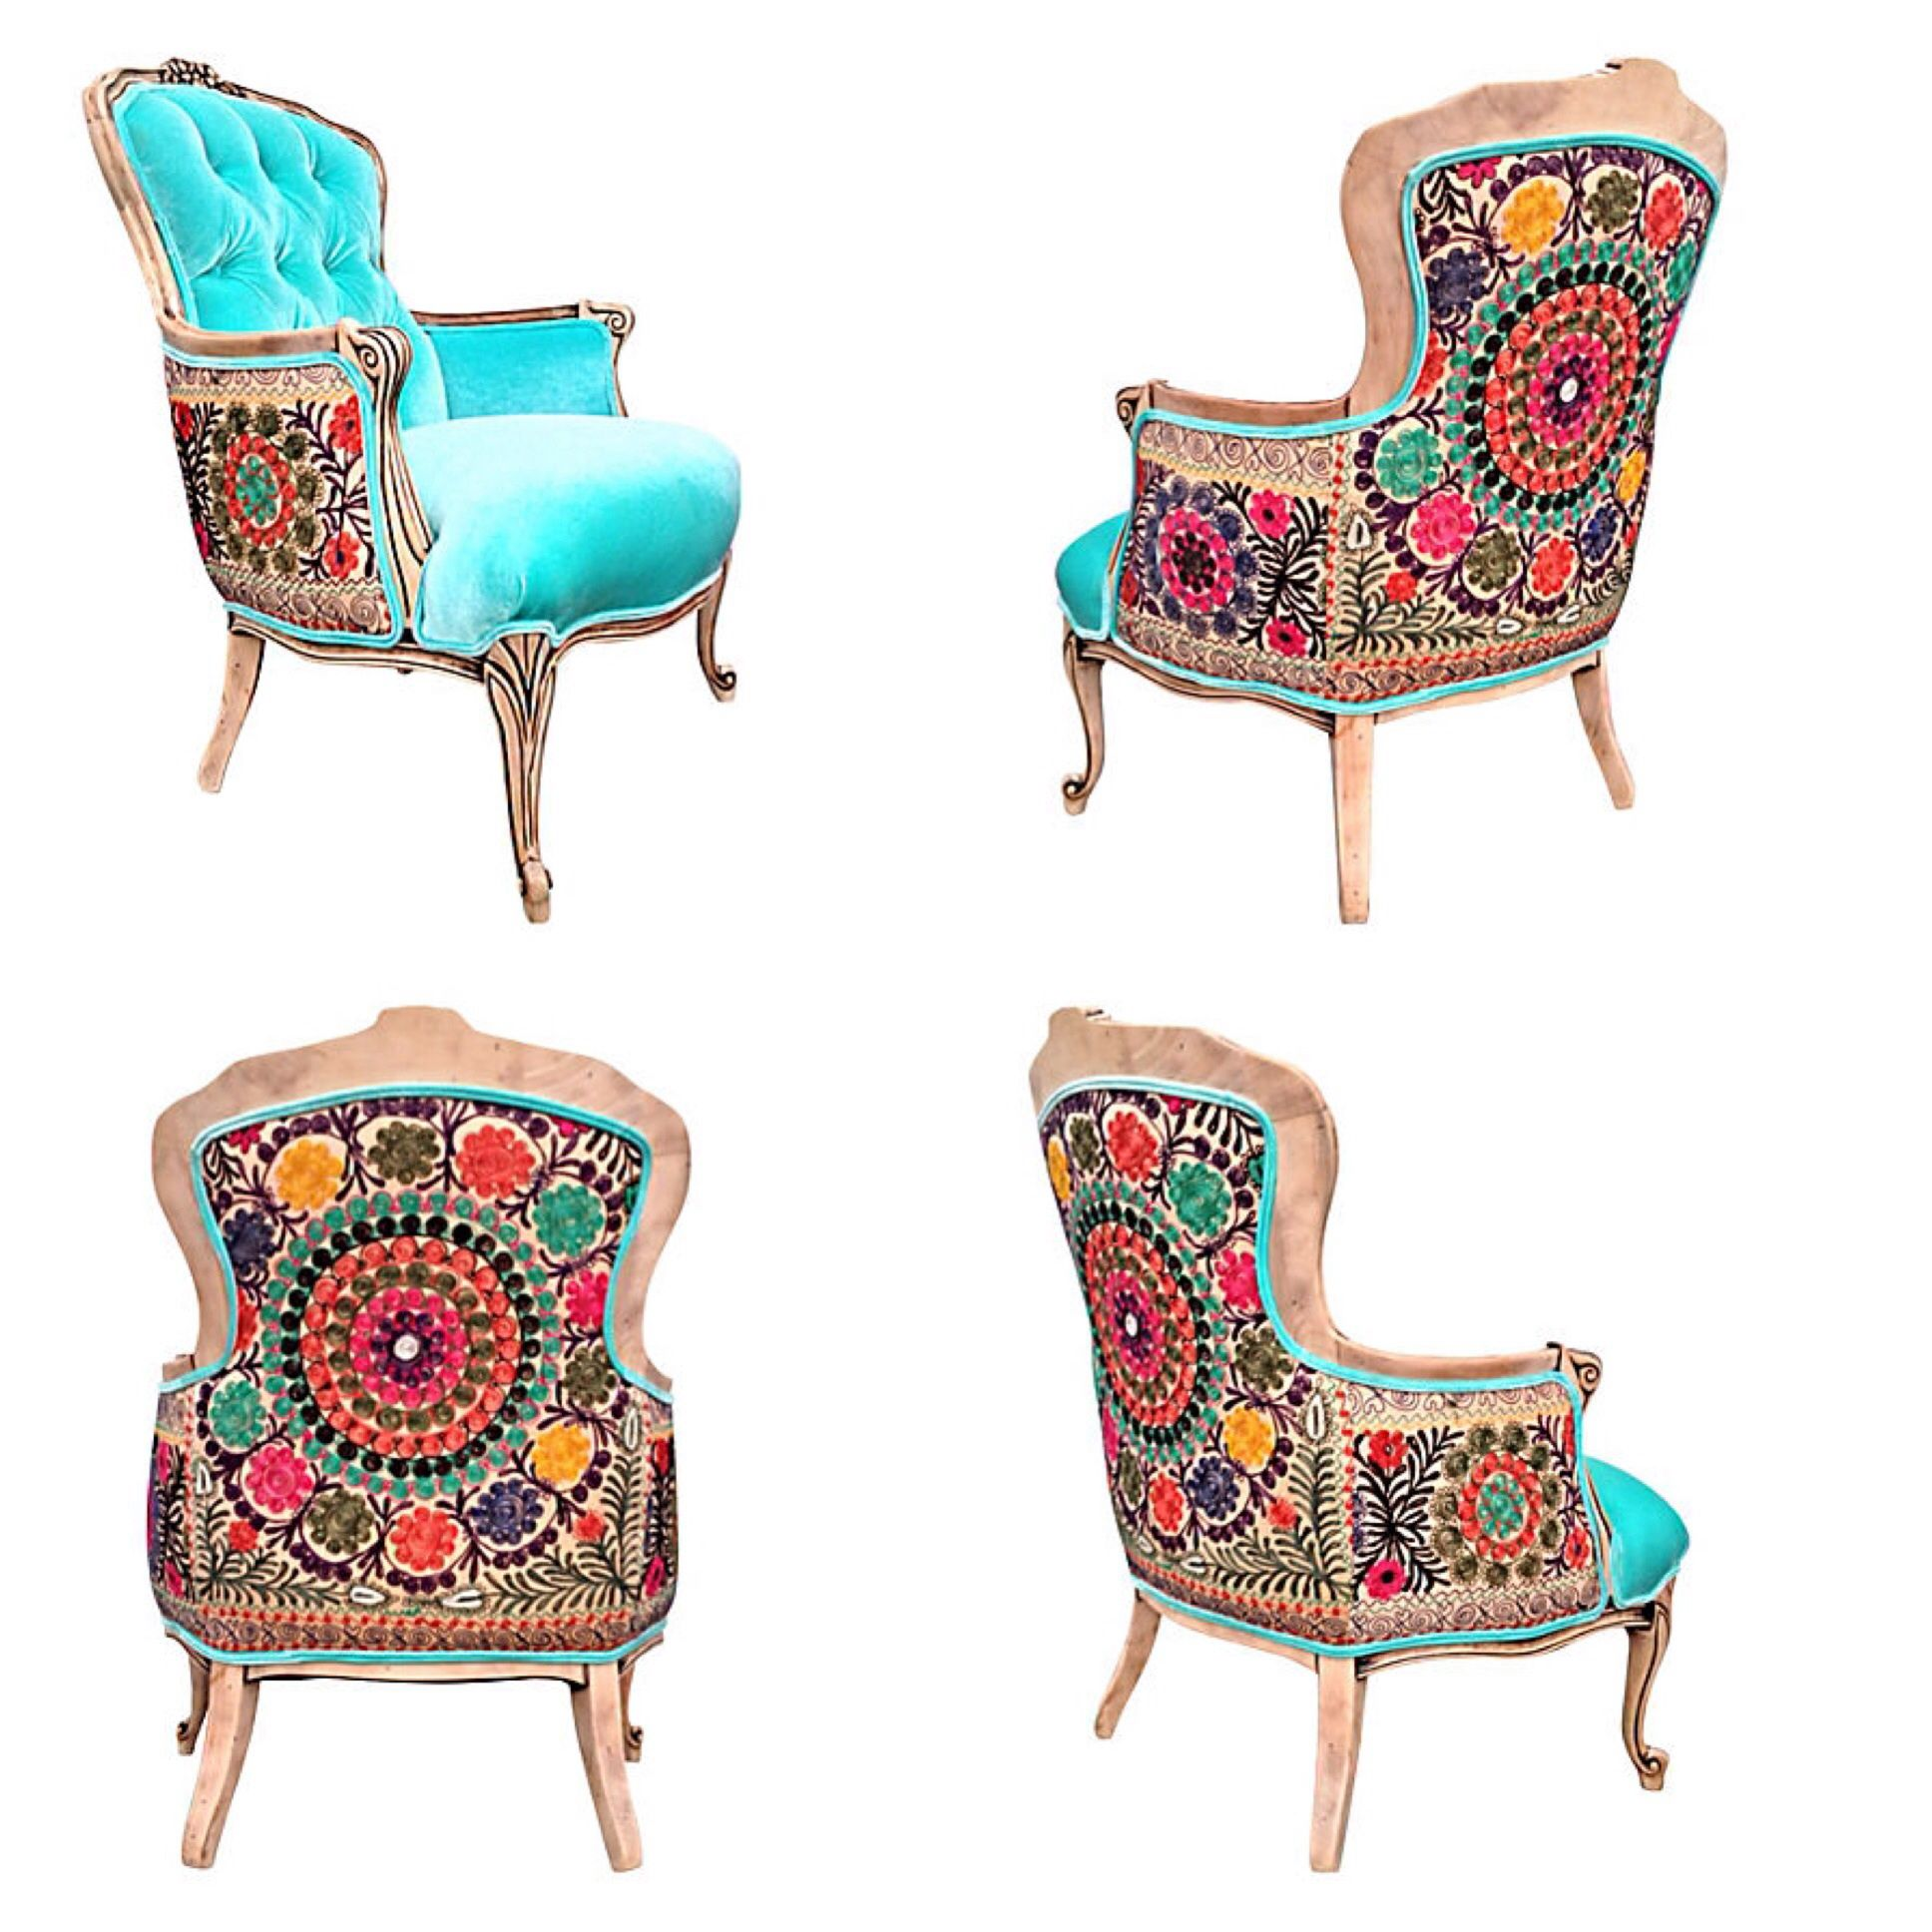 vintage french style berger chair aqua velvet upholstery hand embroidery uzbek c chairs. Black Bedroom Furniture Sets. Home Design Ideas